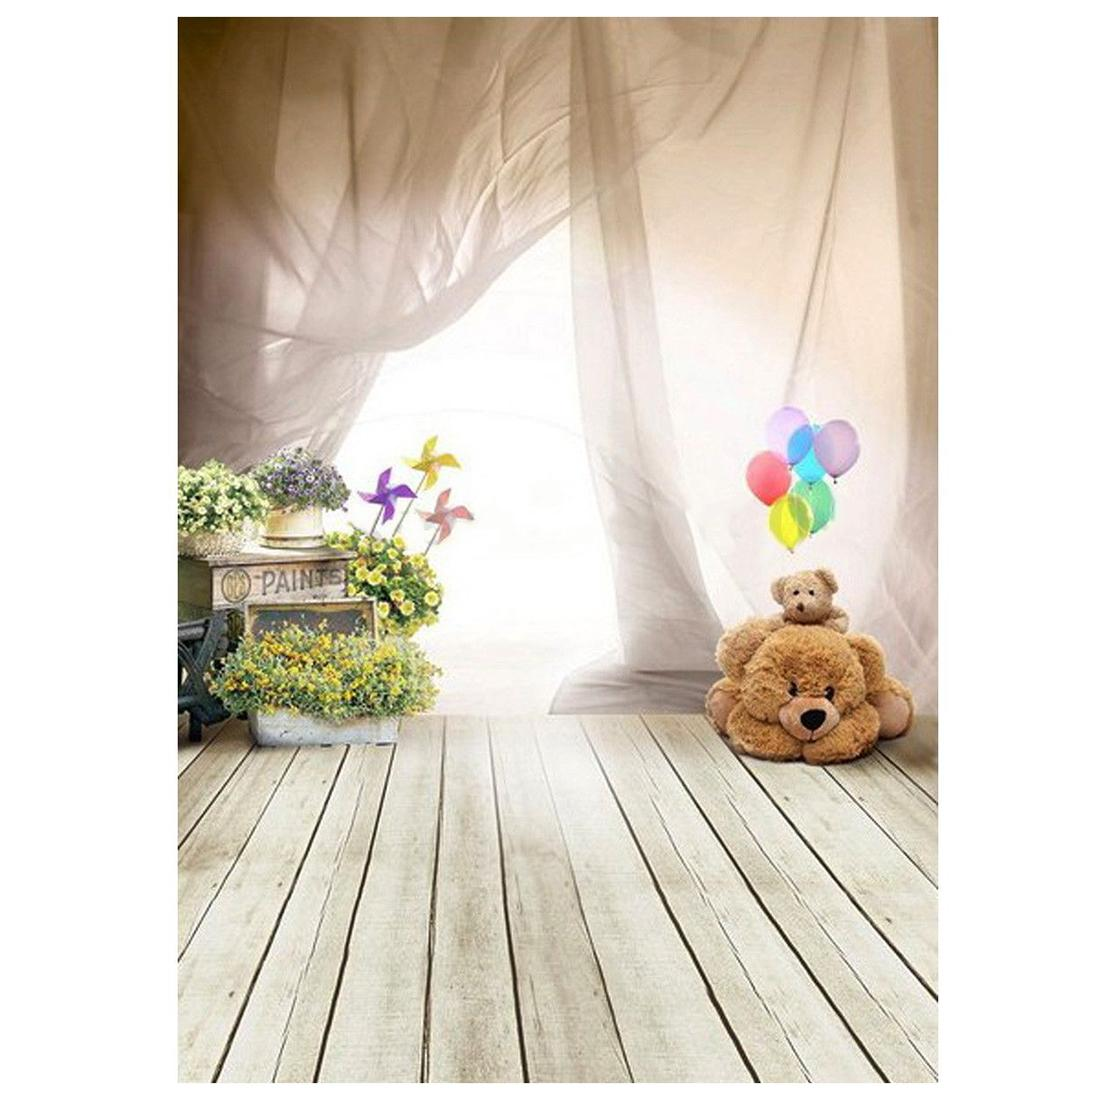 2019 CES 1m X 15m Lovely Bear Floor Balloon Studio Backdrops 1100x1100